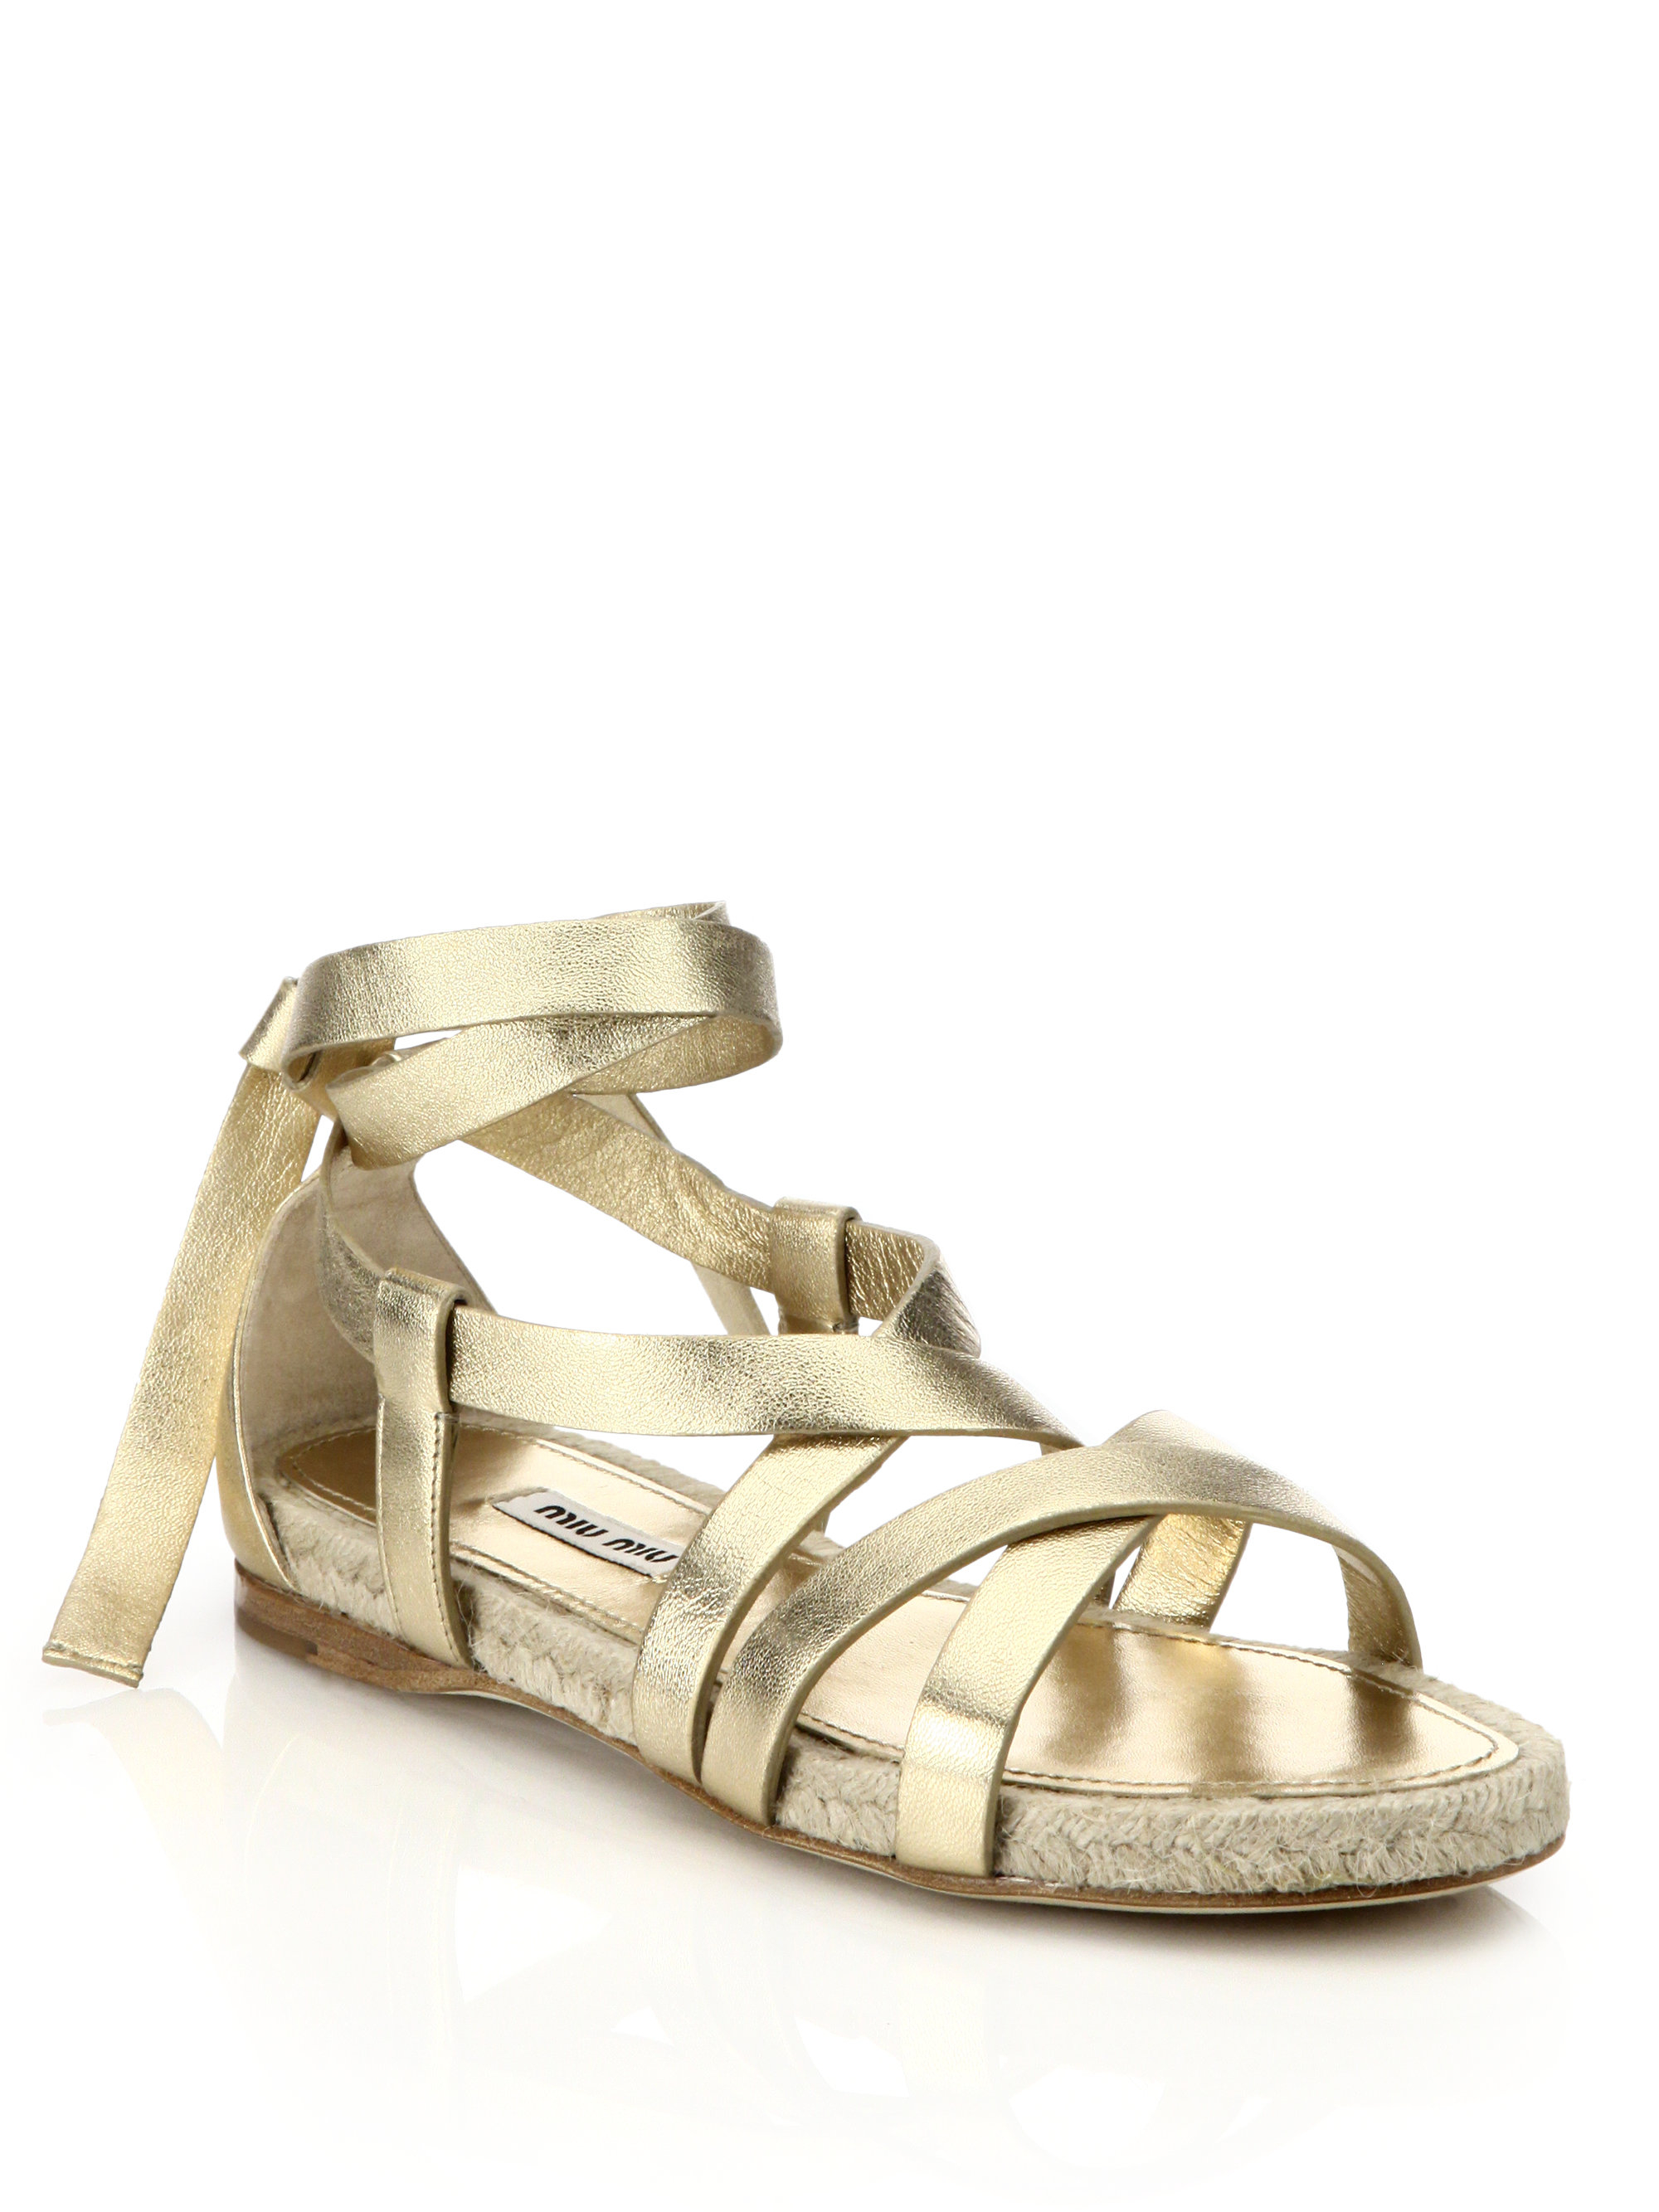 e0222223e Lyst - Miu Miu Metallic Leather Ankle-tie Espadrille Sandals in Metallic